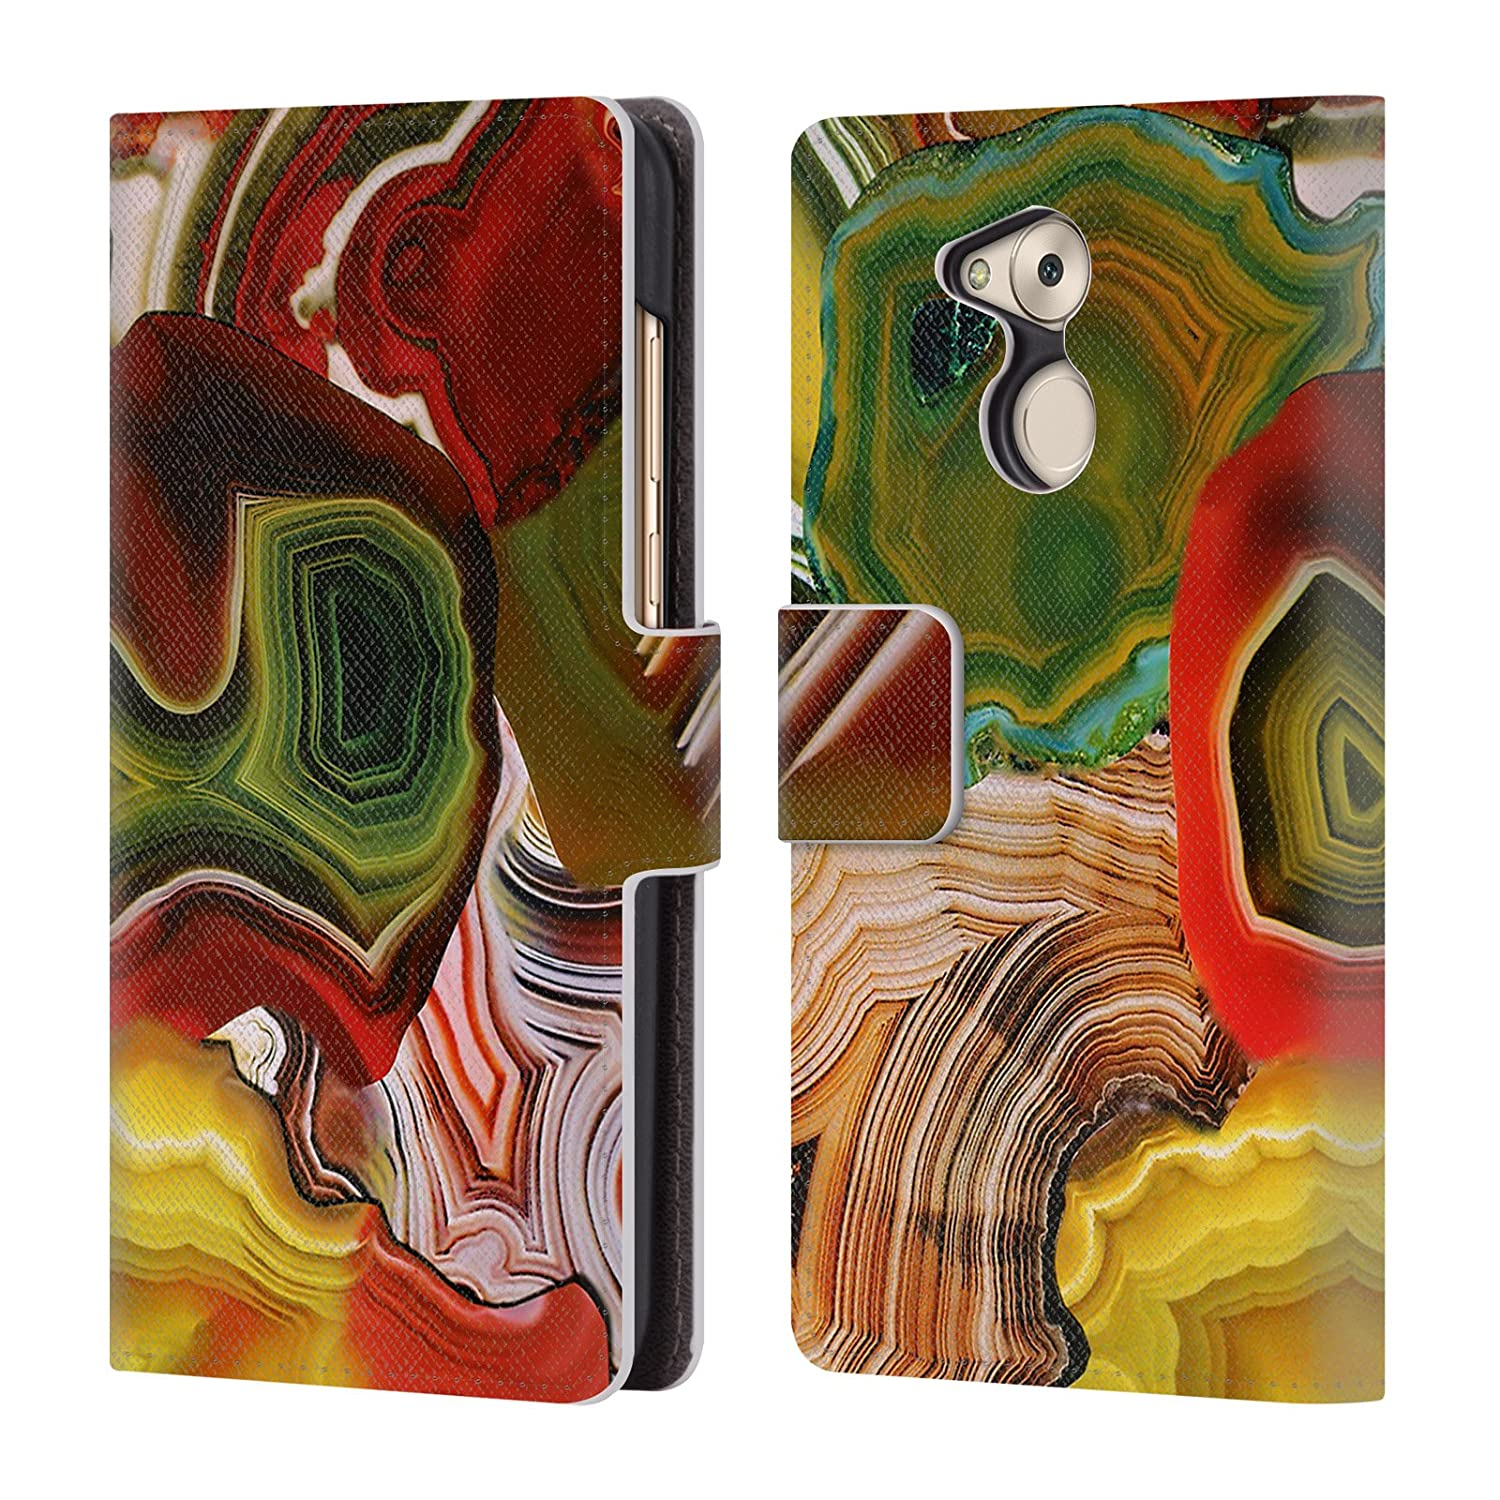 Amazon.com: Official Elena Kulikova Slivers of The Past, Earths Core Agates Leather Book Wallet Case Cover for Huawei Honor 6C Pro / V9 Play: Cell Phones & ...